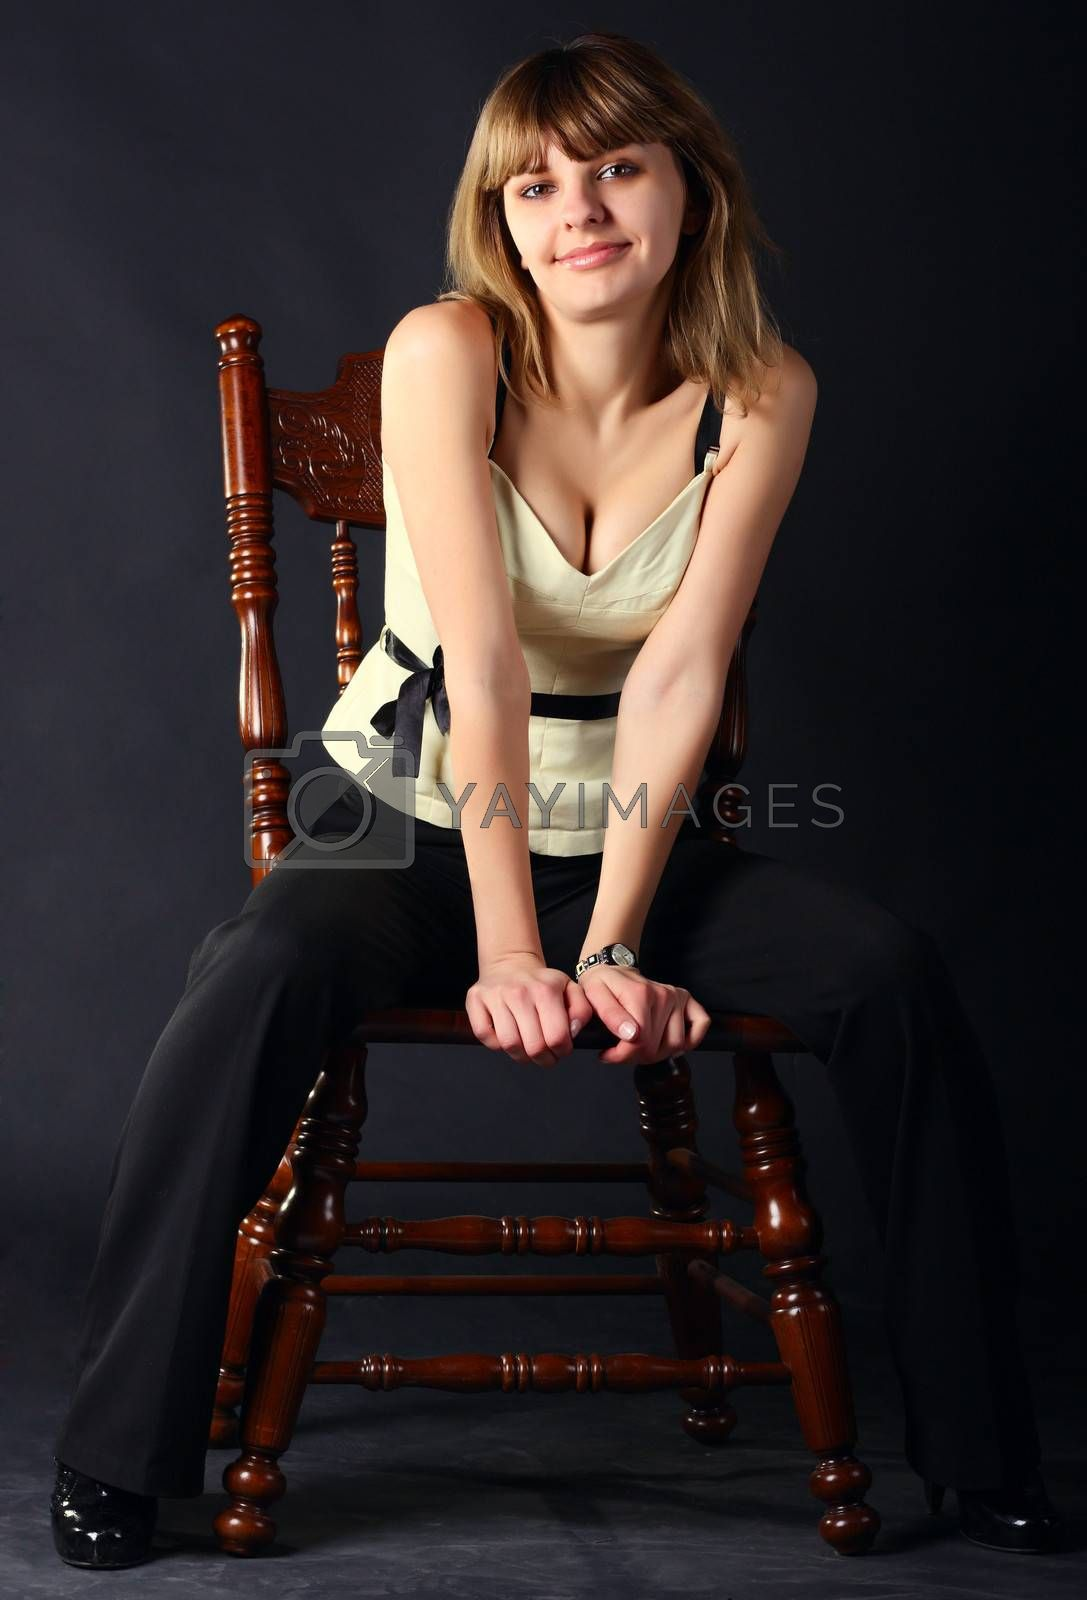 Young beautiful women sitting on a chair